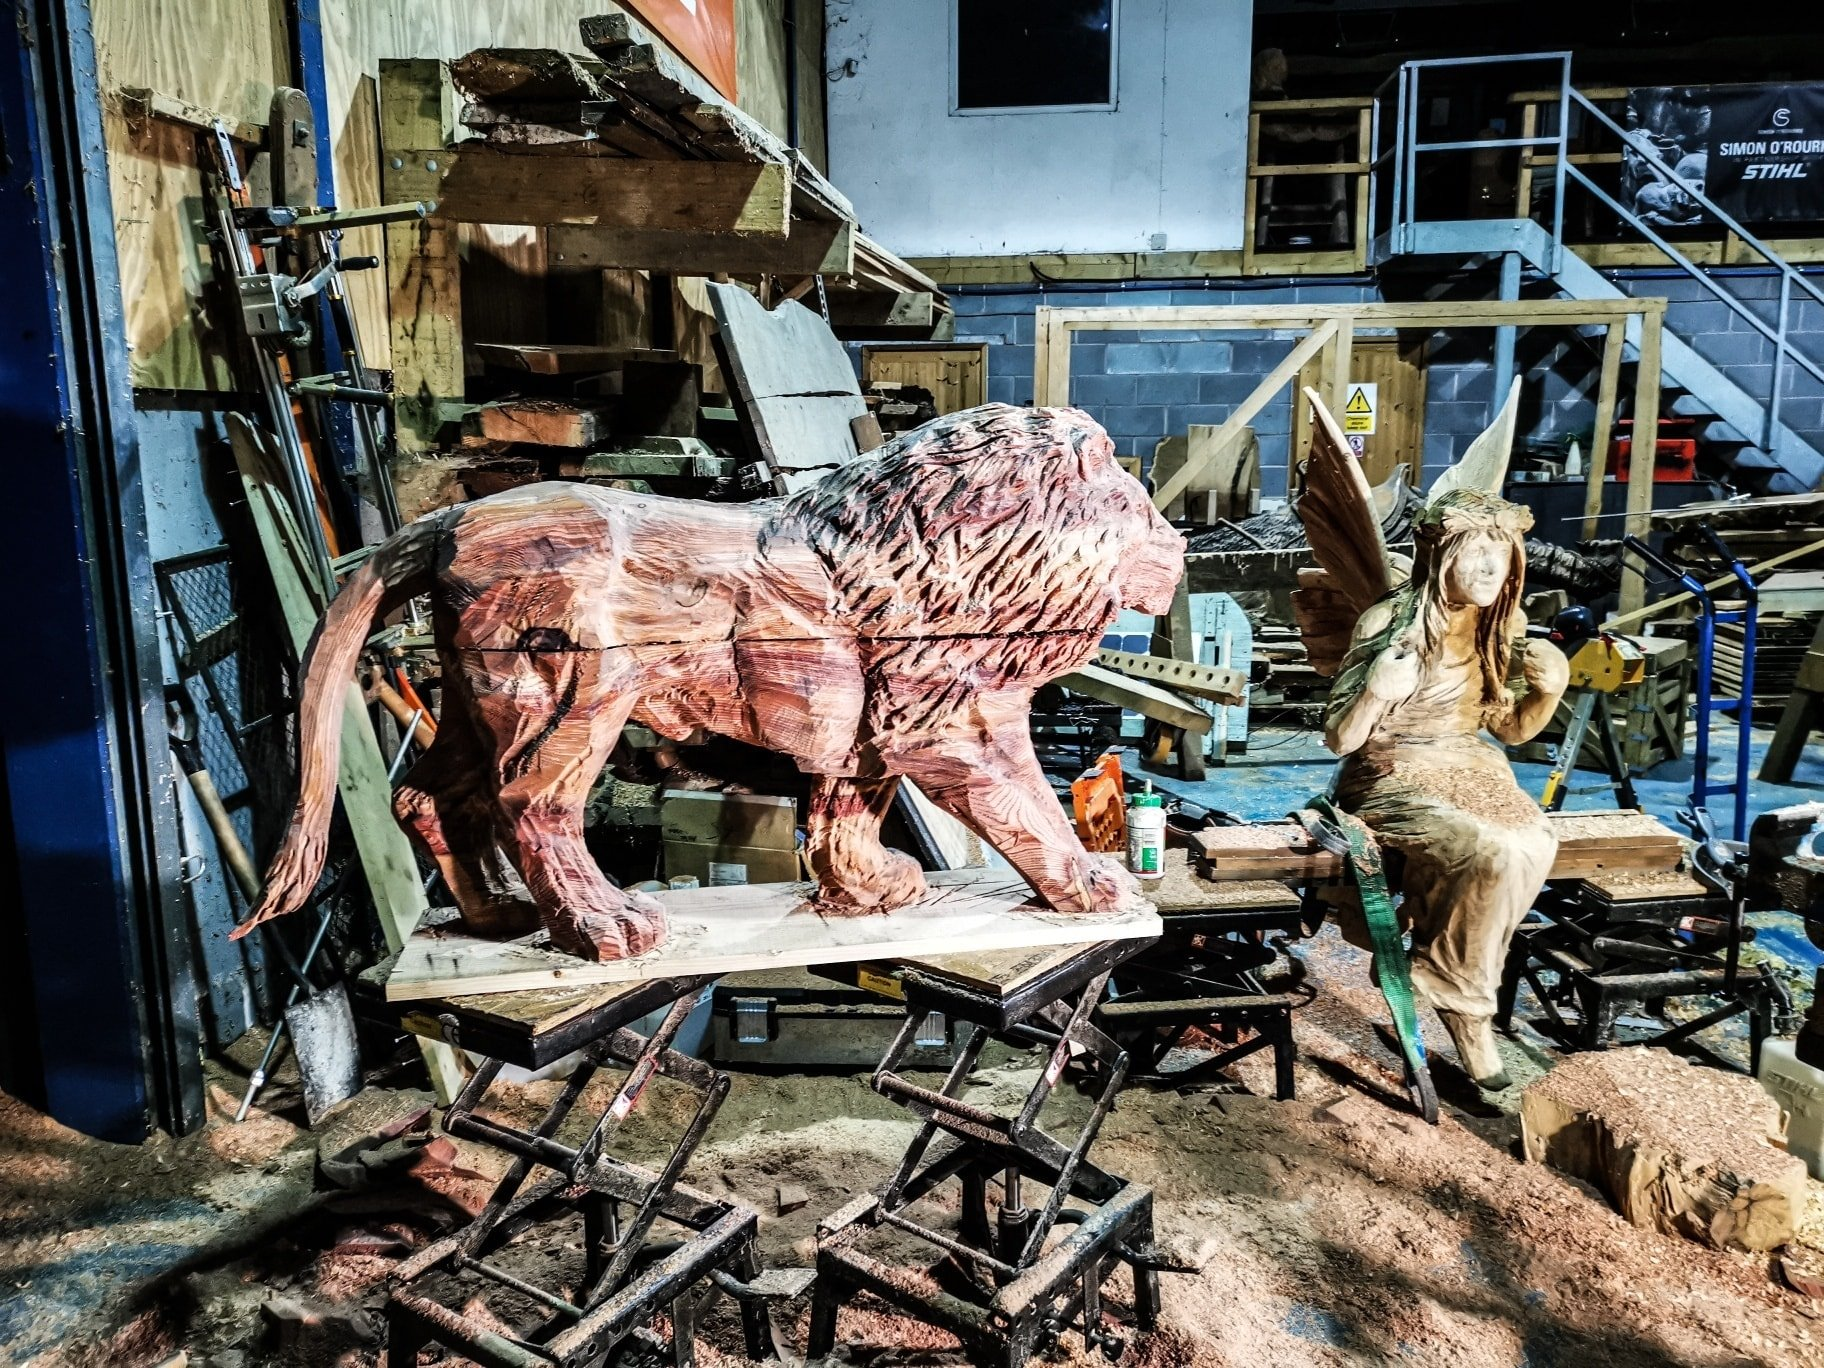 redwood lion sculpture in a workshop